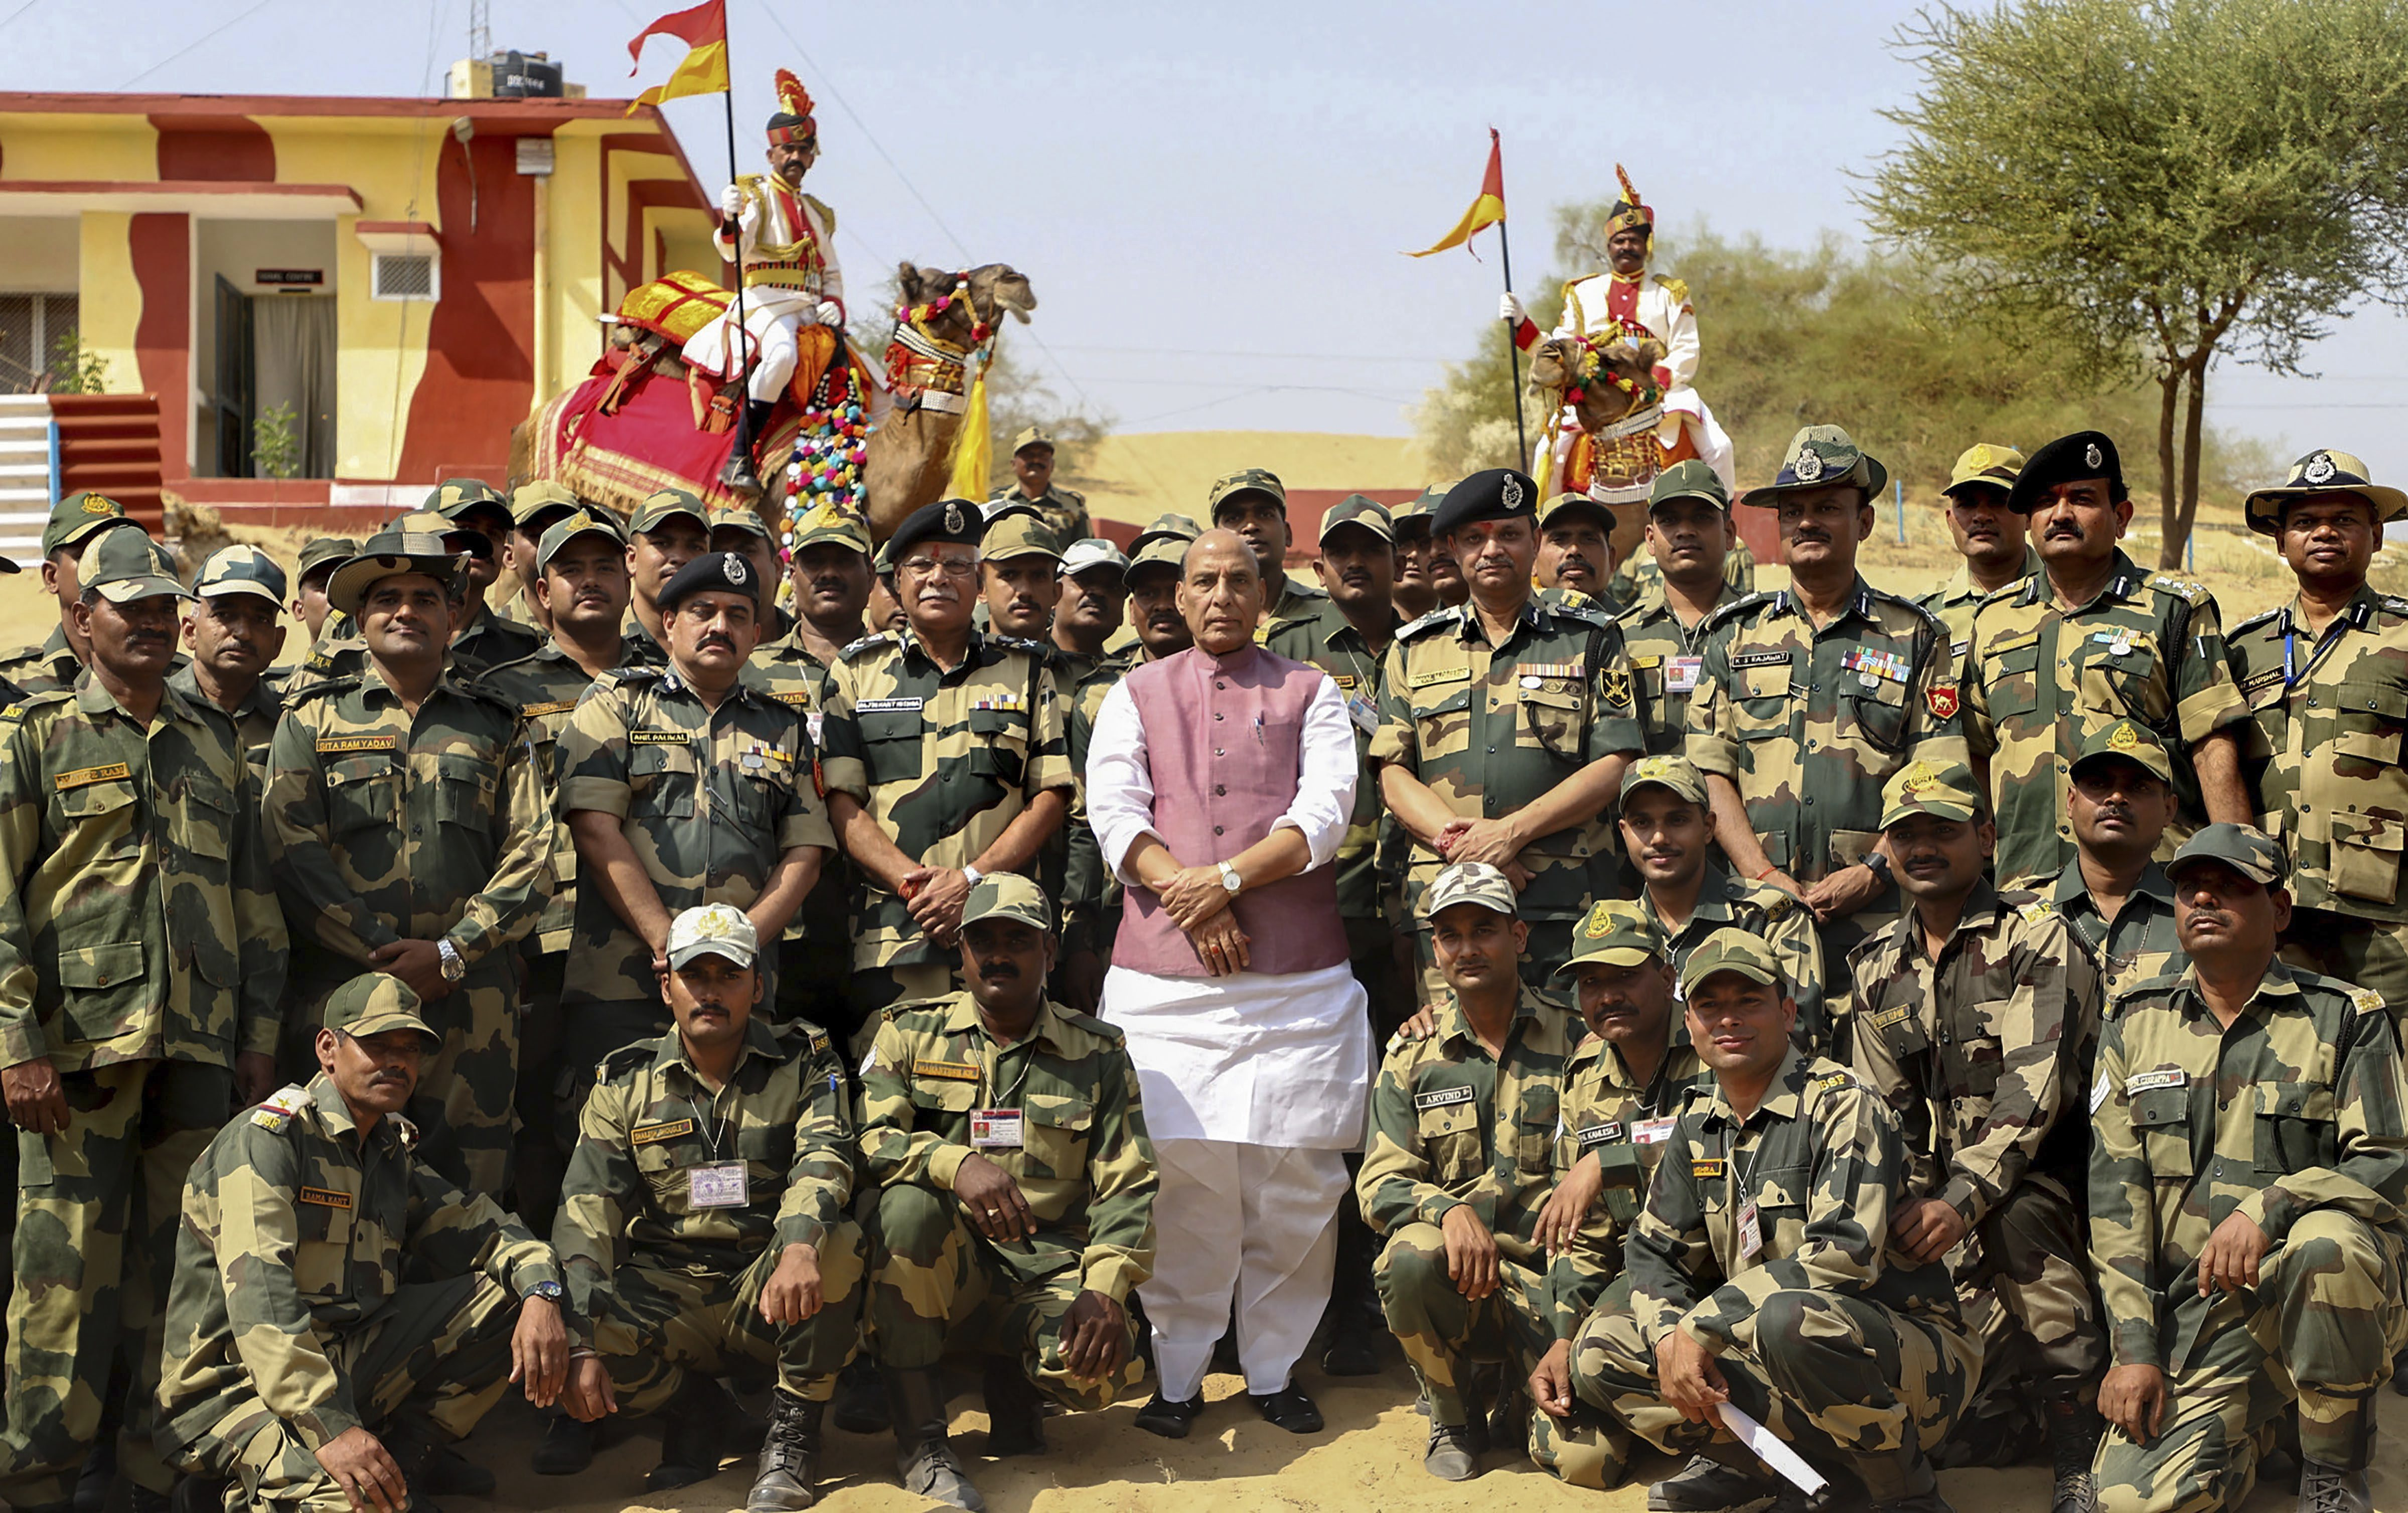 Union Home Minister Rajnath Singh in a group photograph with BSF personnel at a border outpost, in Bikaner, Rajasthan - PTI